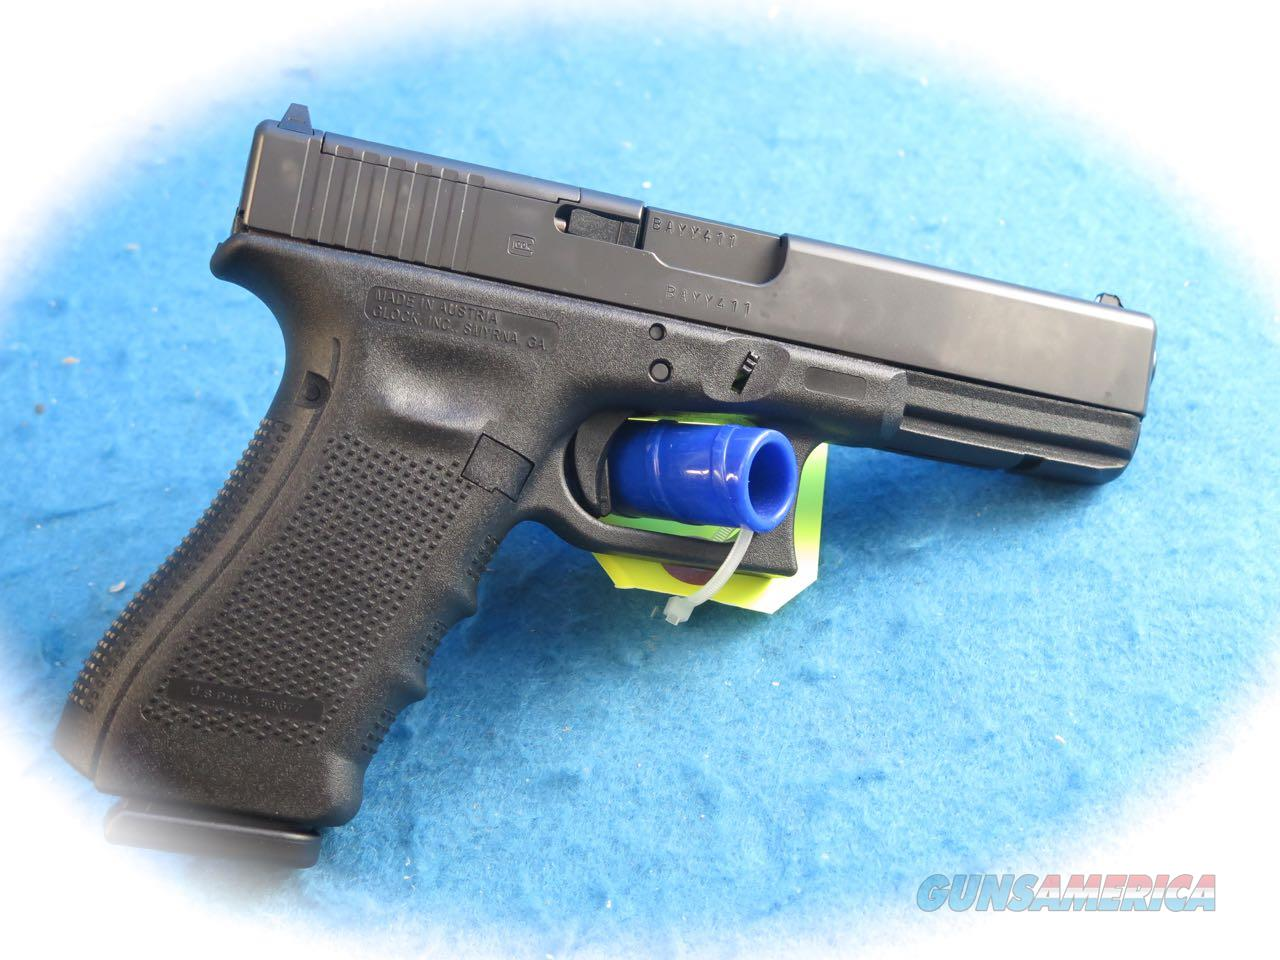 Glock Model 17 Gen 4 MOS 9mm Semi Auto Pistol **New**  Guns > Pistols > Glock Pistols > 17